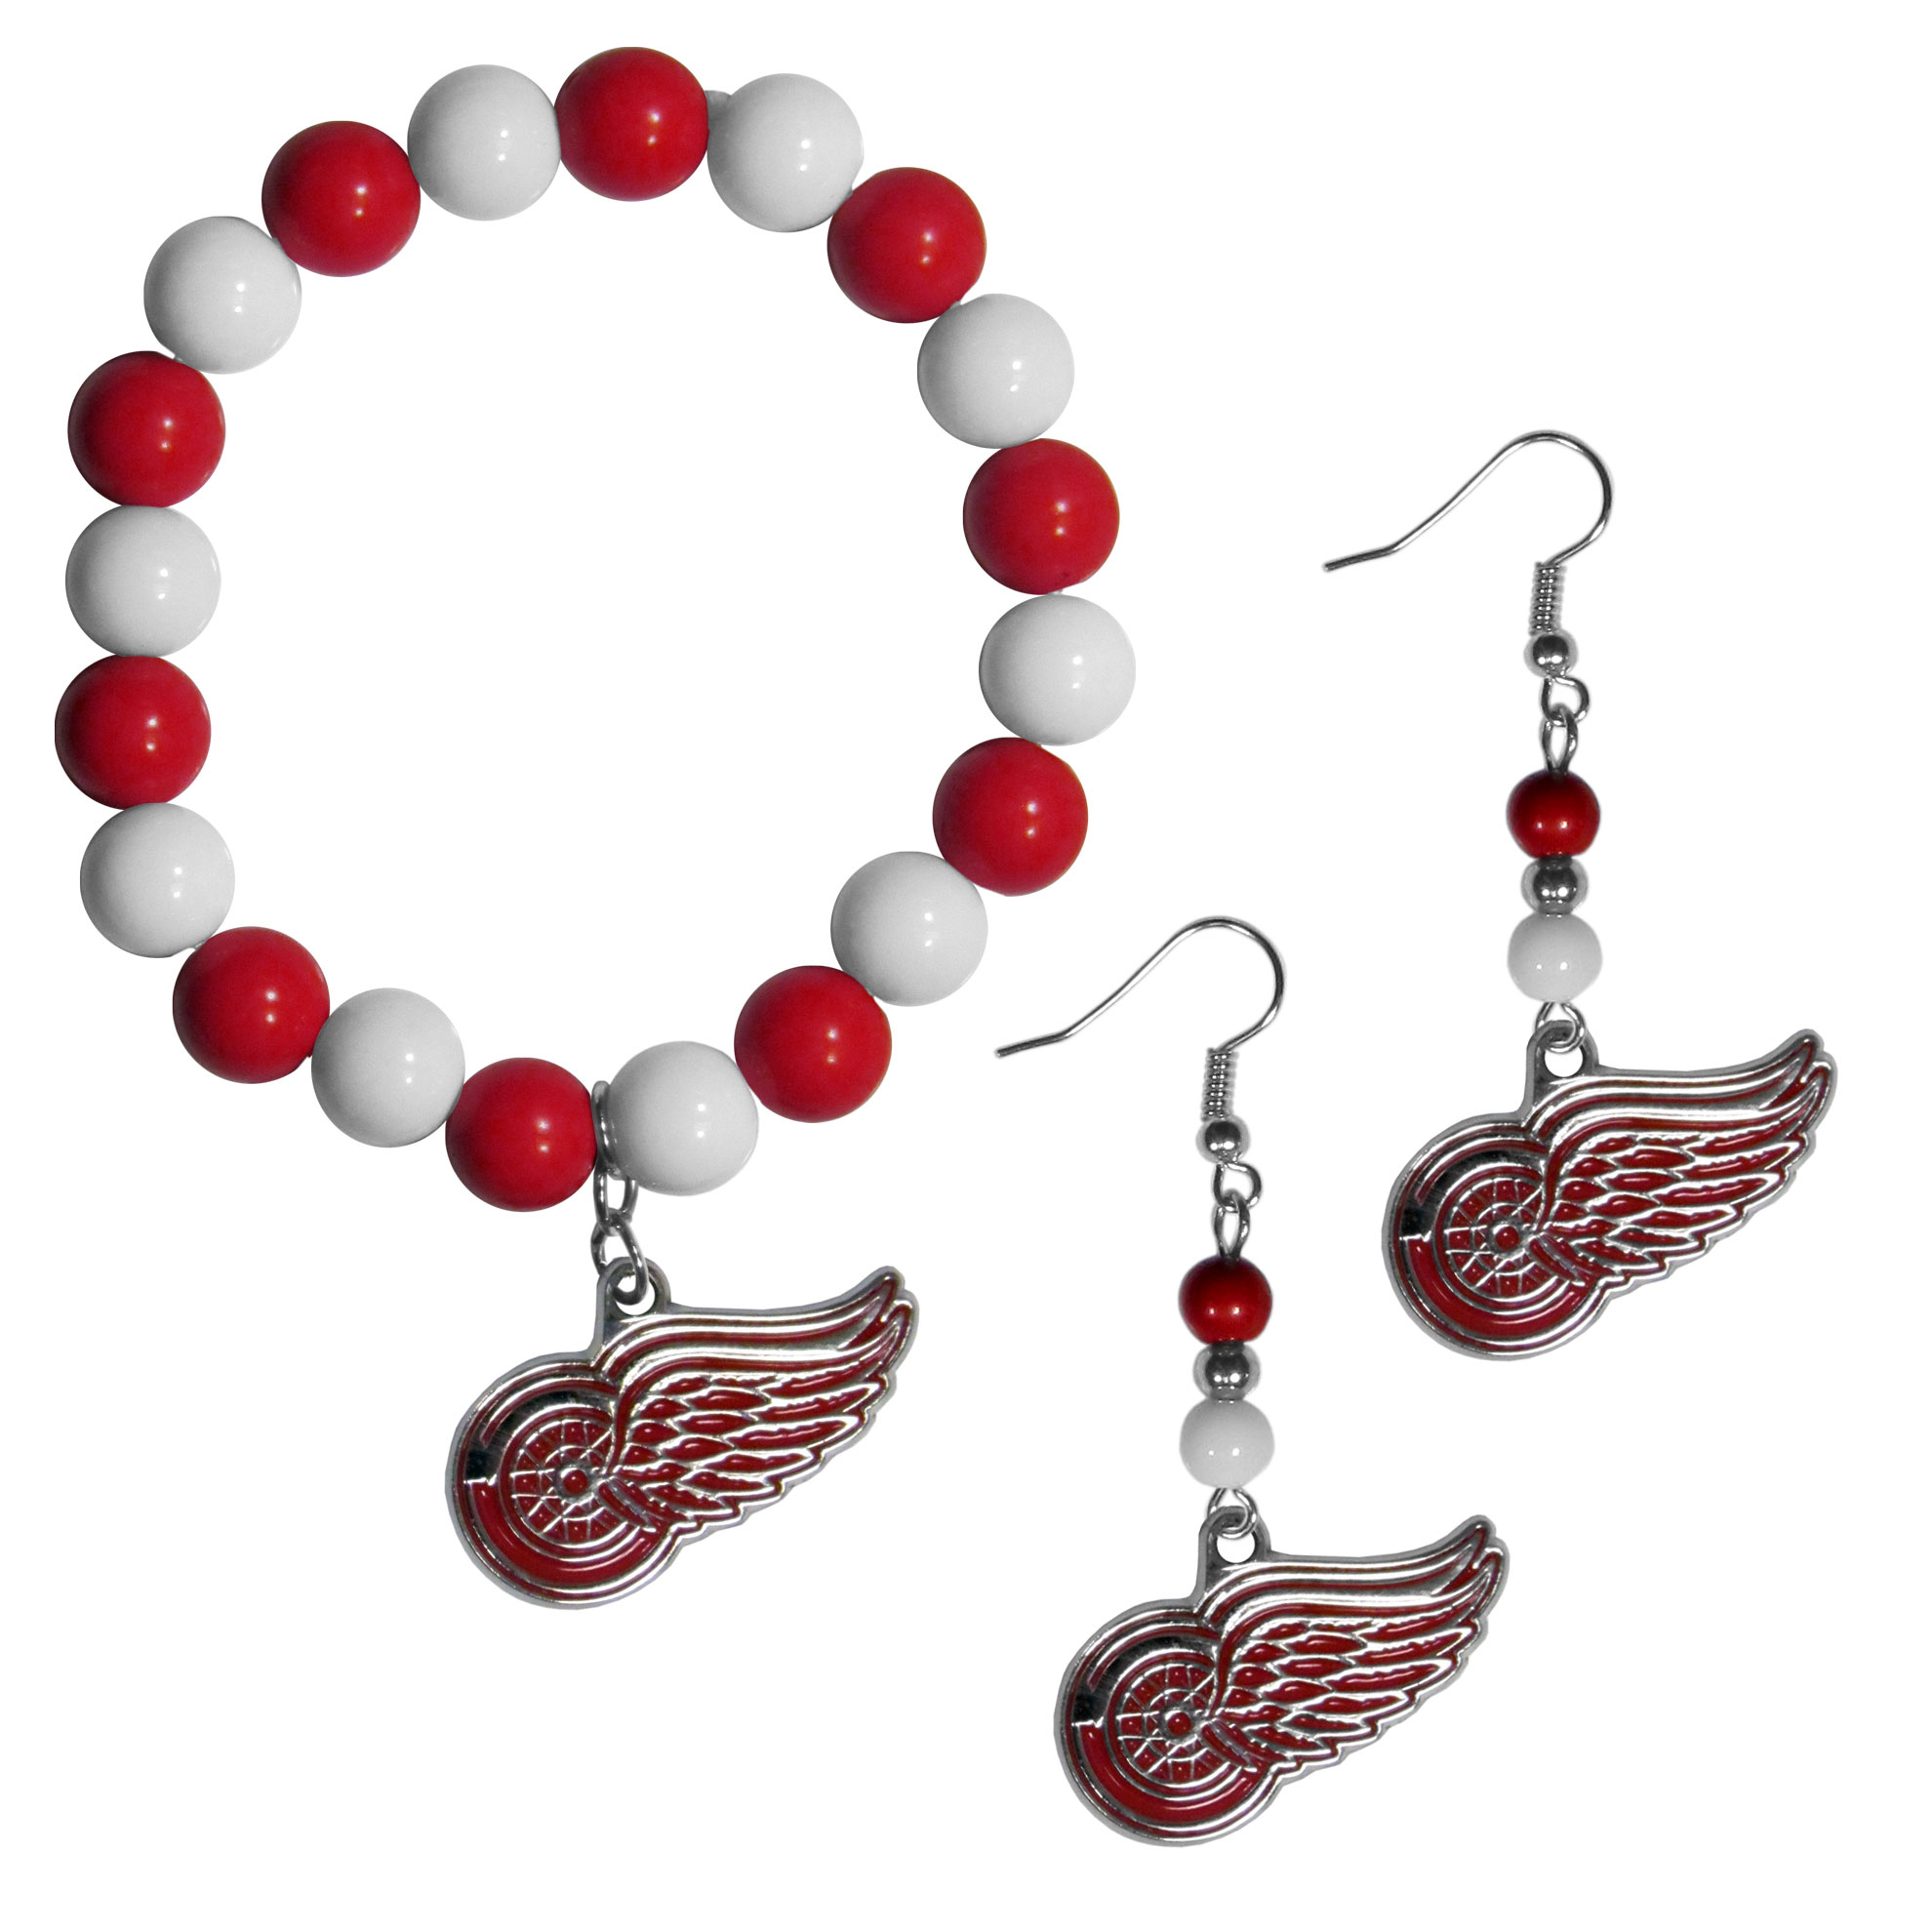 Detroit Red Wings® Fan Bead Earrings and Bracelet Set - This fun and colorful Detroit Red Wings® fan bead jewelry set is fun and casual with eye-catching beads in bright team colors. The fashionable dangle earrings feature a team colored beads that drop down to a carved and enameled charm. The stretch bracelet has larger matching beads that make a striking statement and have a matching team charm. These sassy yet sporty jewelry pieces make a perfect gift for any female fan. Spice up your game-day outfit with these fun colorful earrings and bracelet that are also cute enough for any day.